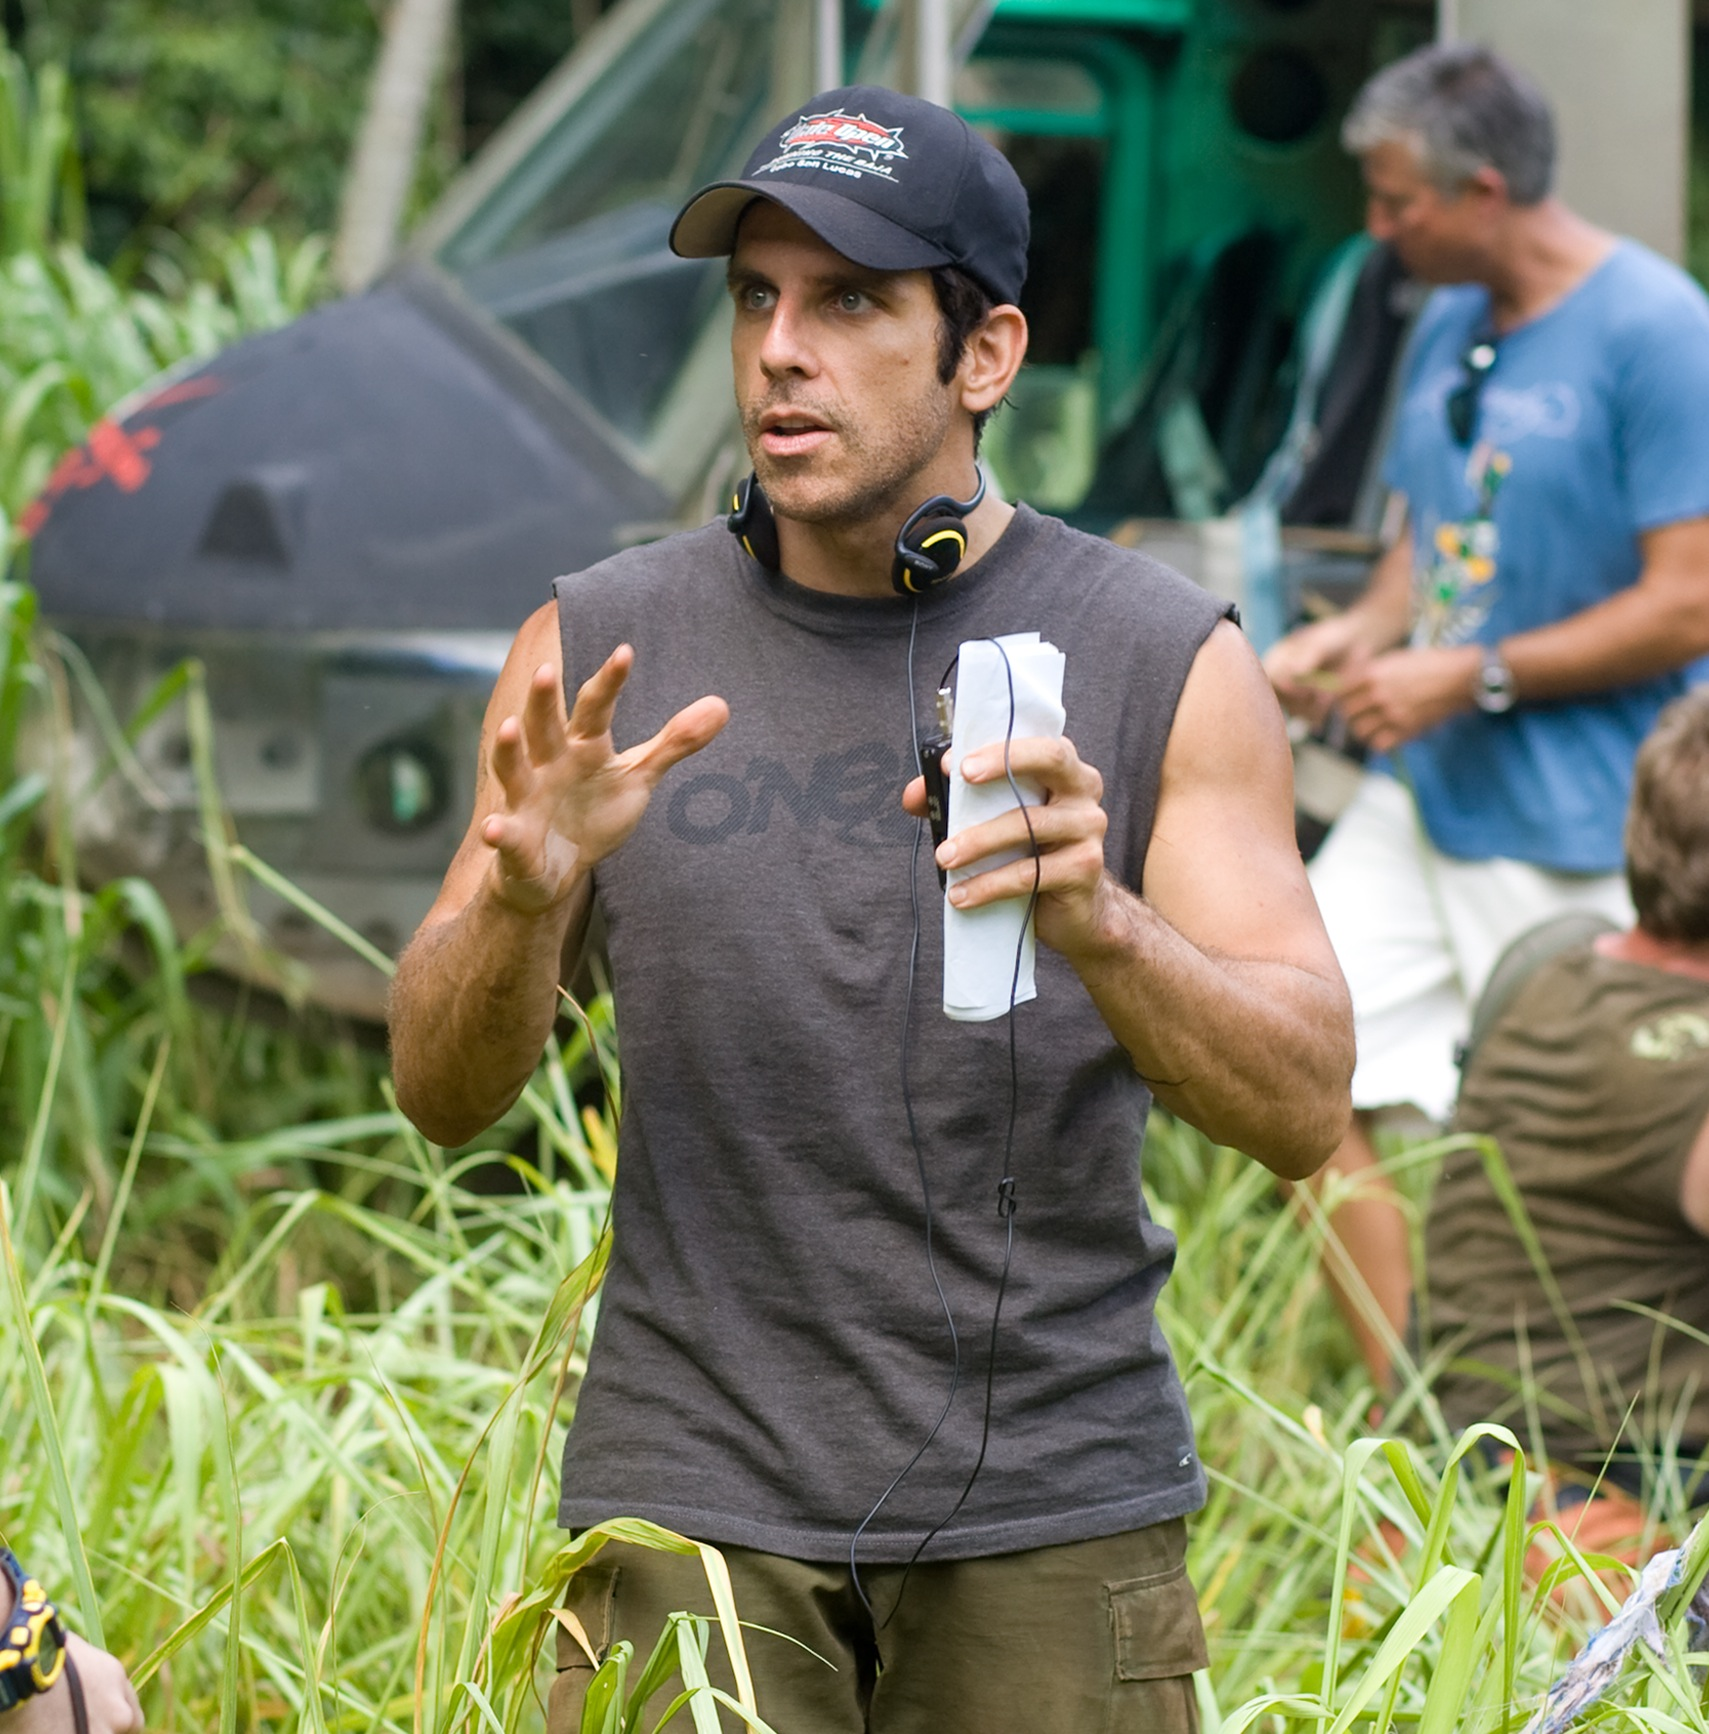 Gallery For > Tropic Thunder Ben Stiller Hands